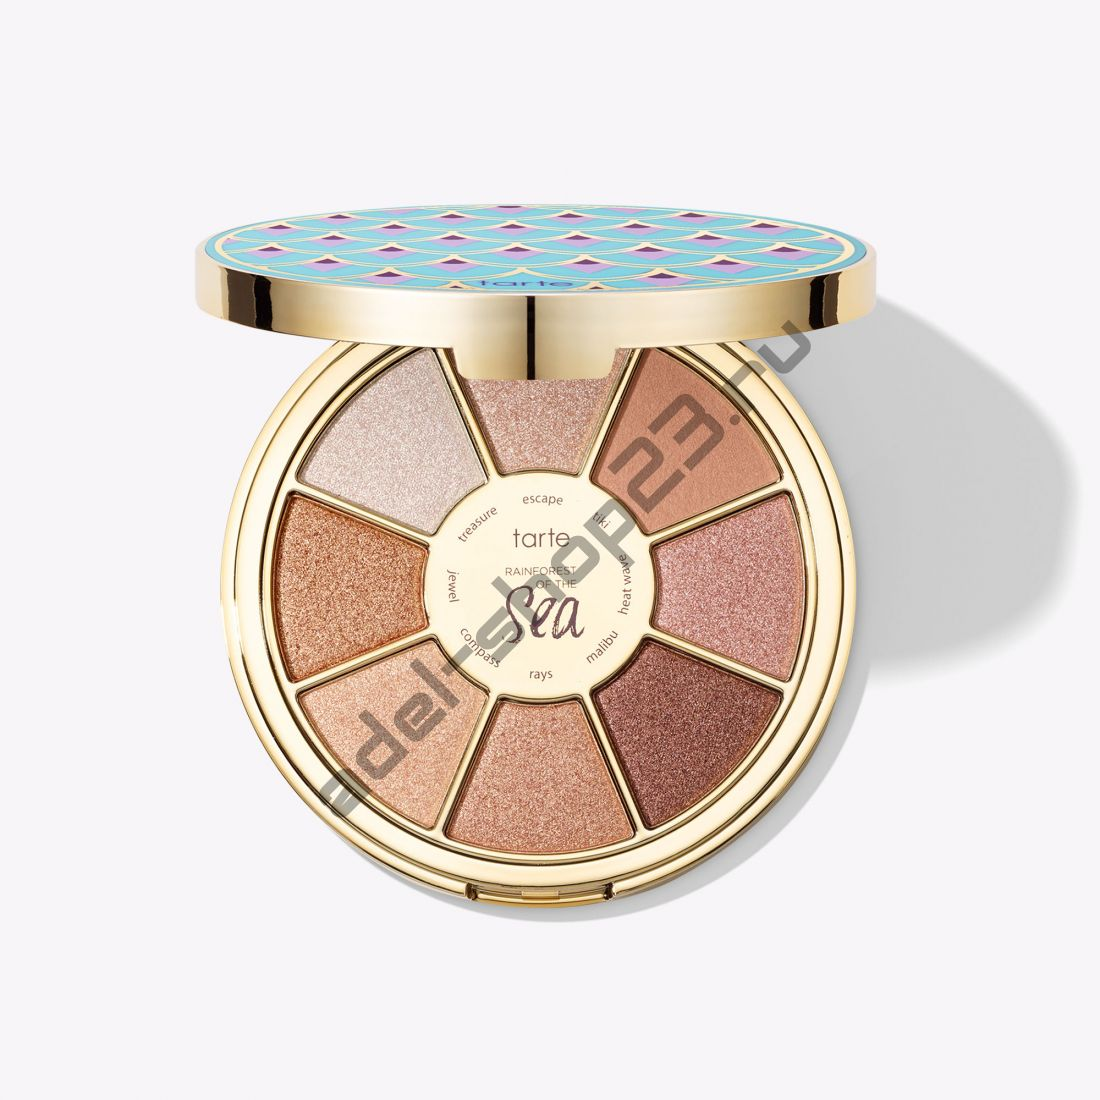 Tarte - limited-edition Rainforest of the Sea highlighting eyeshadow palette vol. III